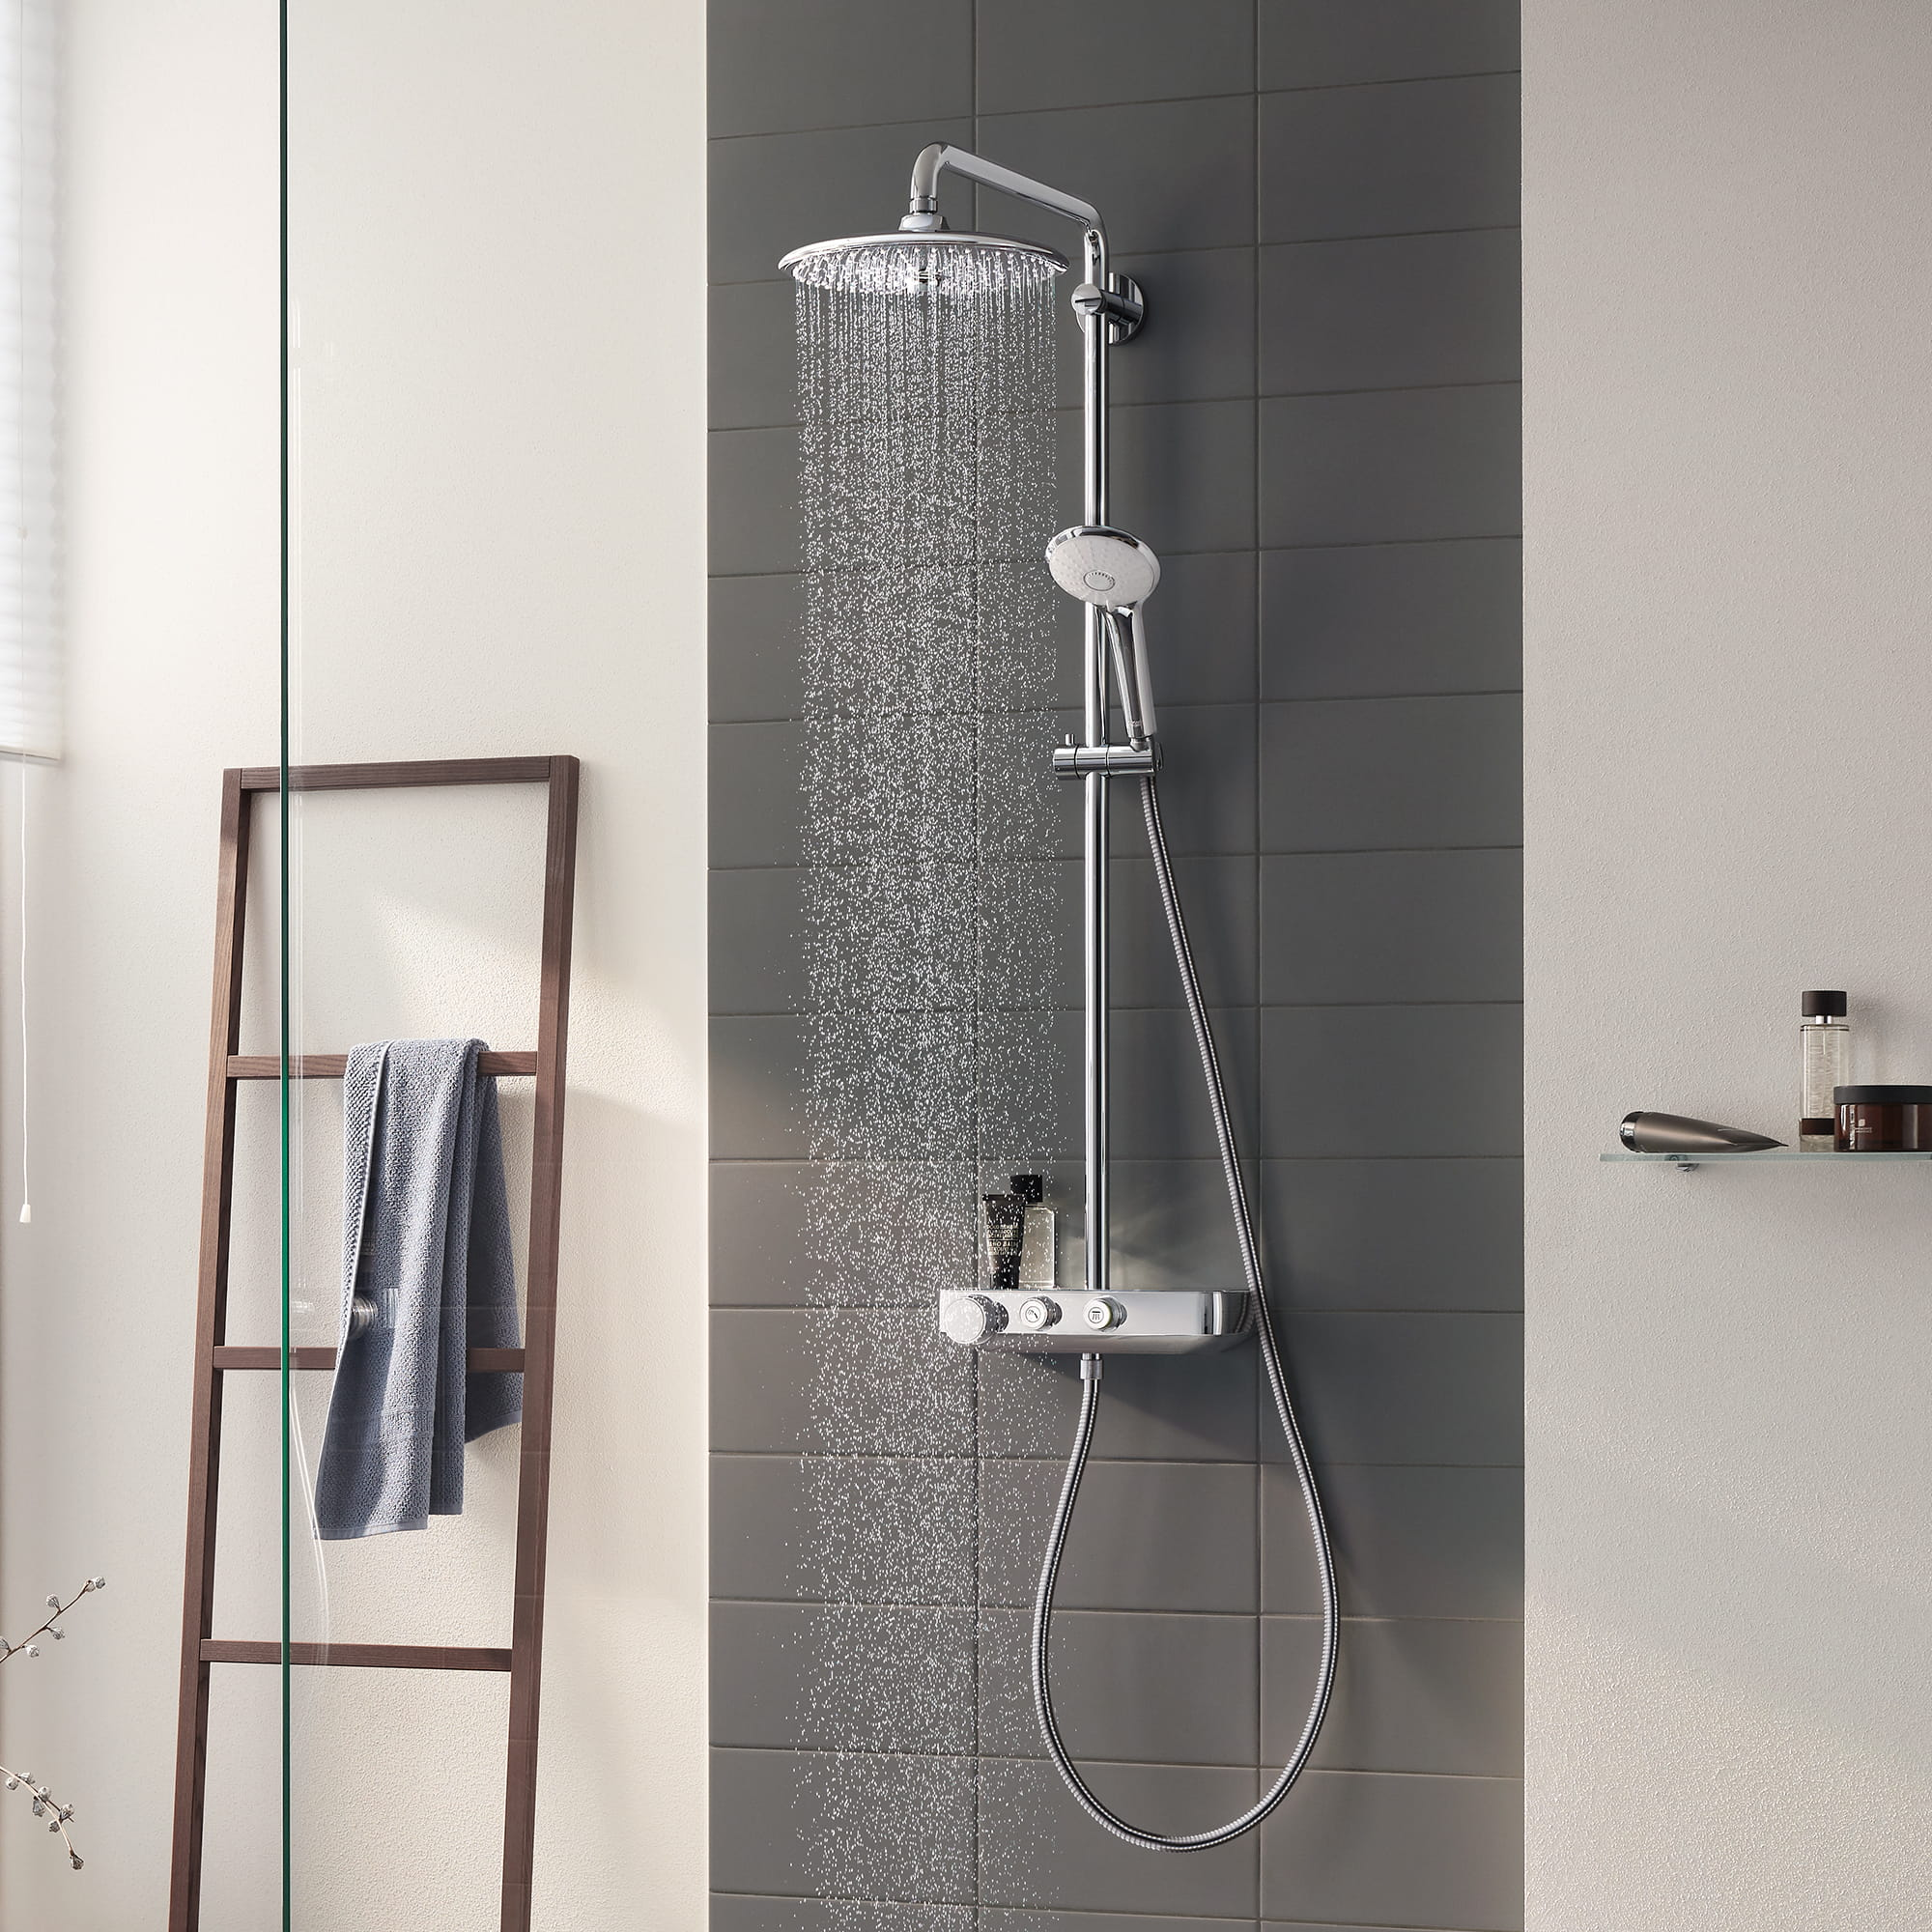 Euphoria SmartControl shower water spray